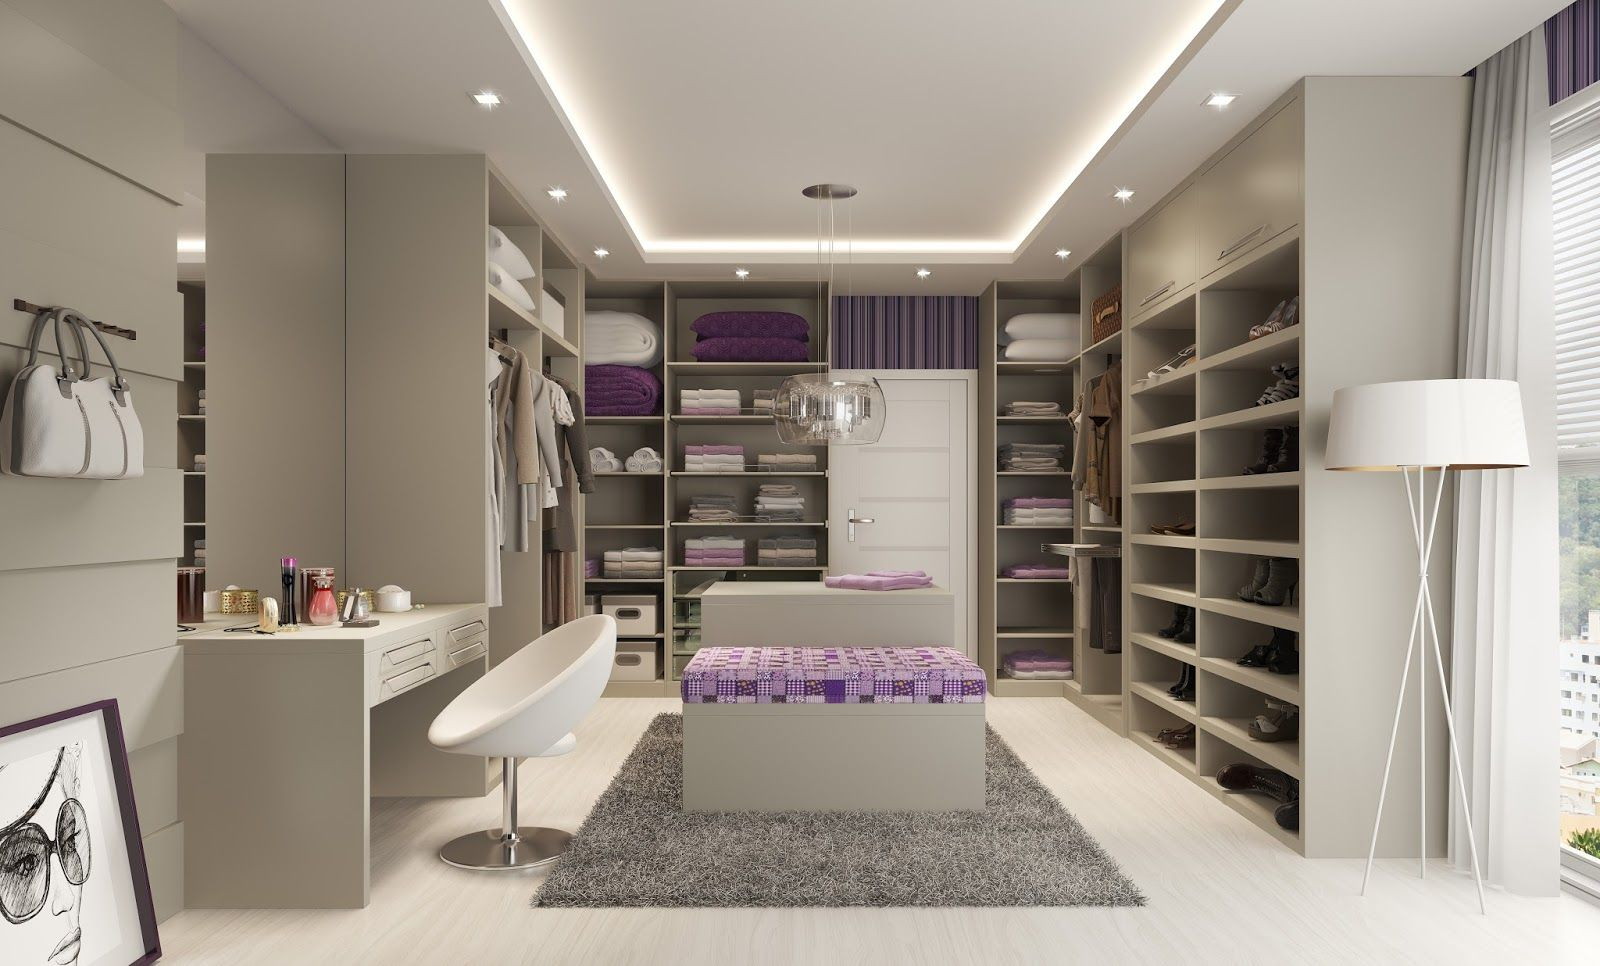 Closets Pequenos E Grandes Com Bancadas De Make Bedrooms ~ Quarto Com Suite E Closet Pequeno